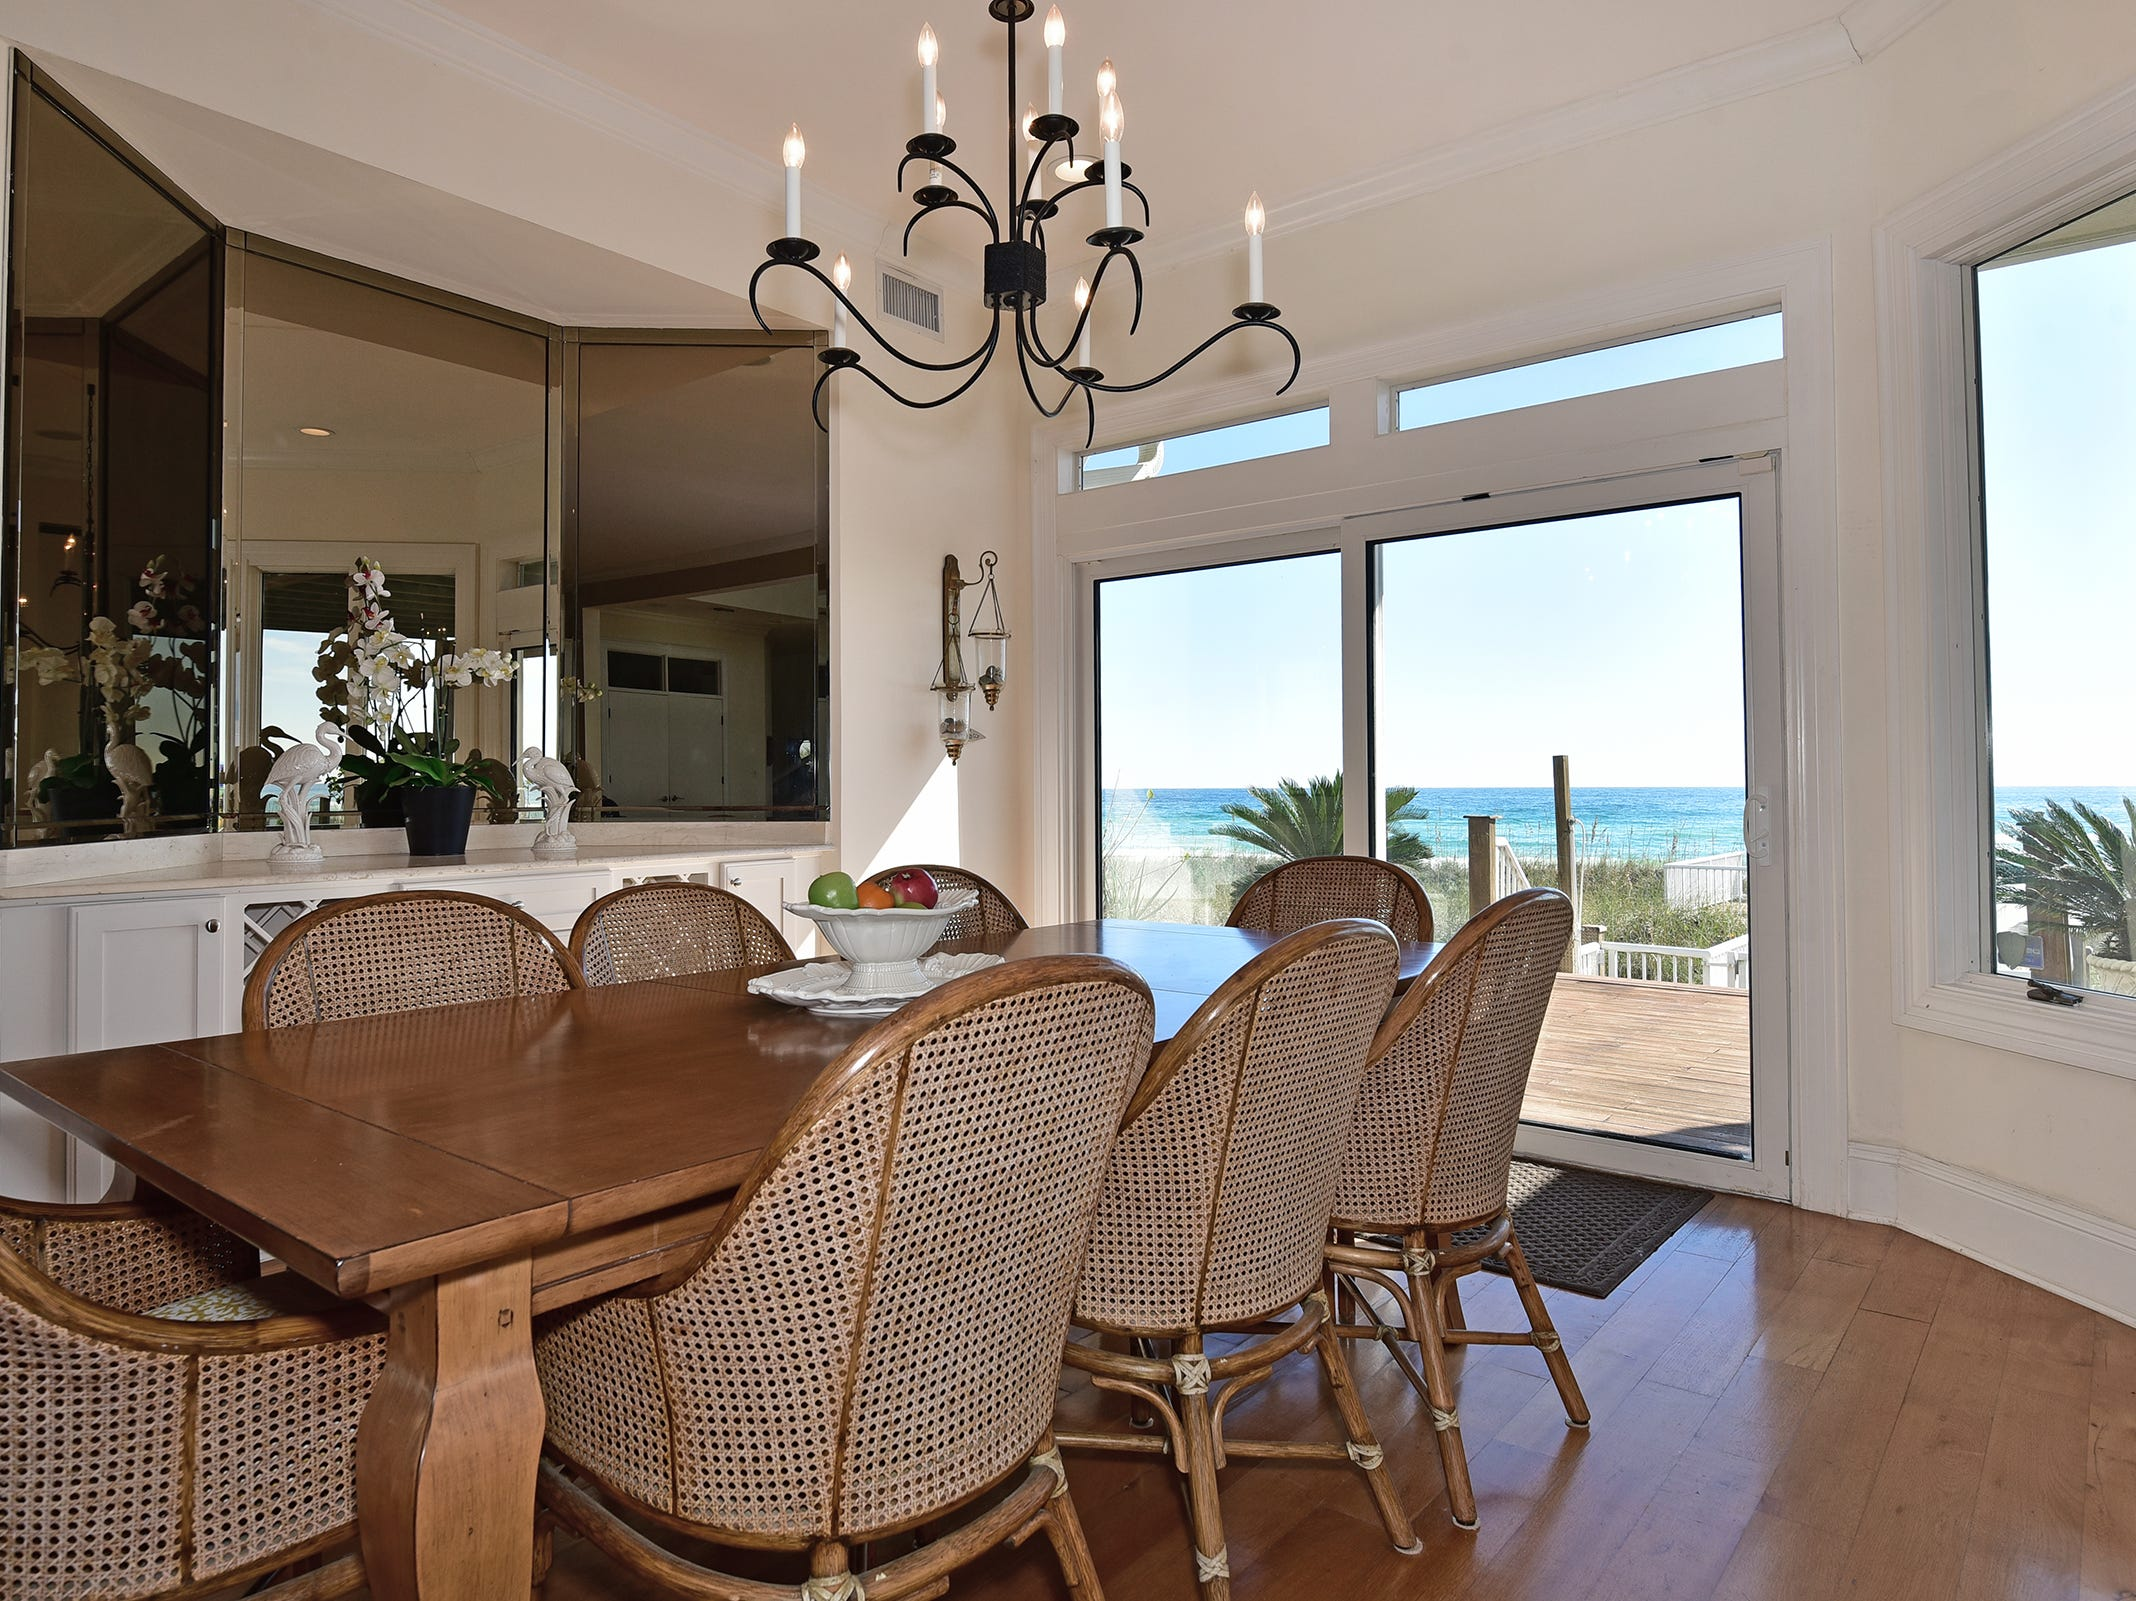 28 Calle HermosaThe Gulf-front dining area.